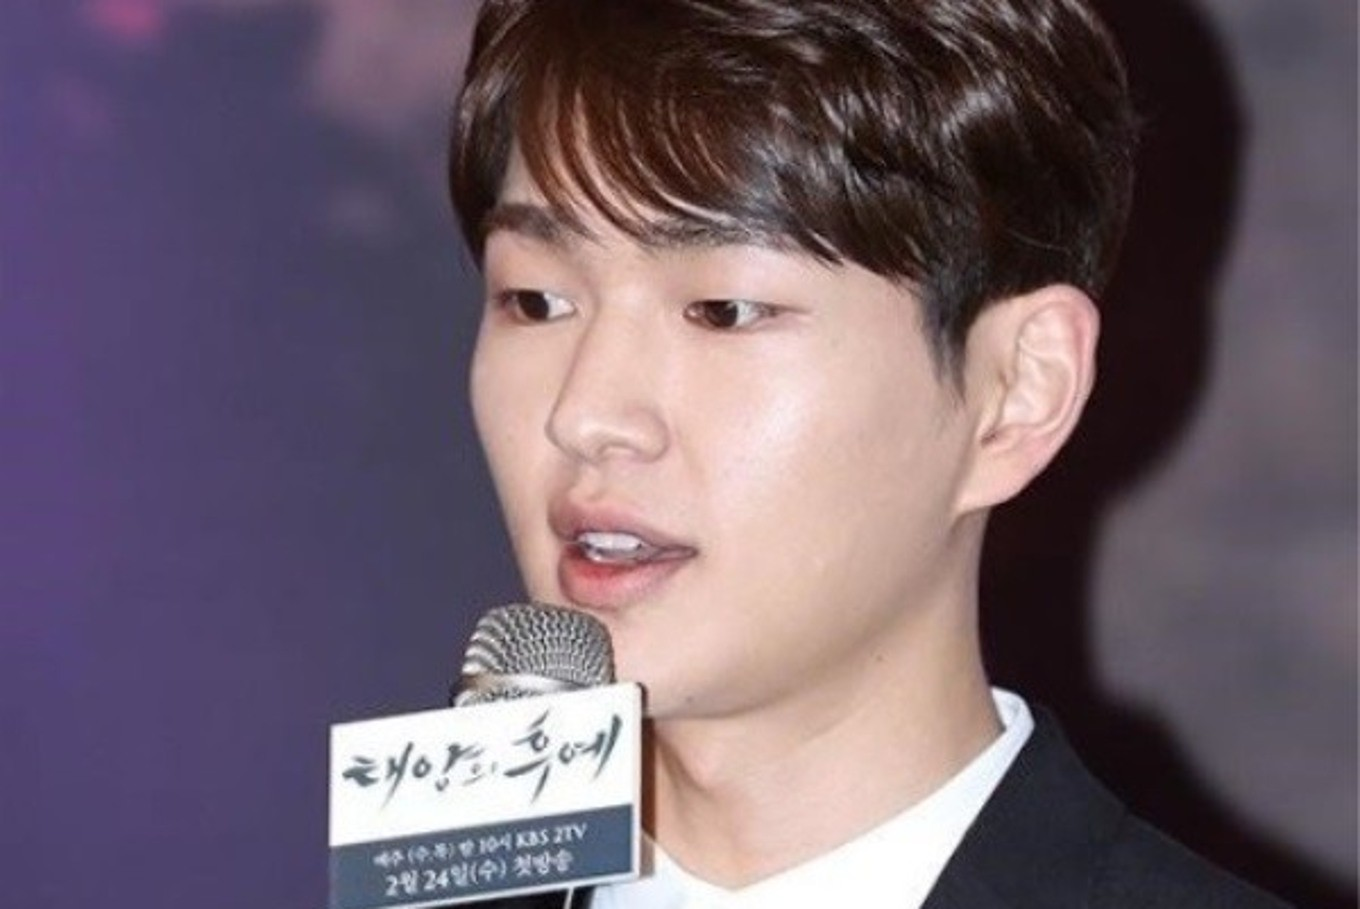 SHINee's Onew cleared of sexual harassment allegation by prosecutors